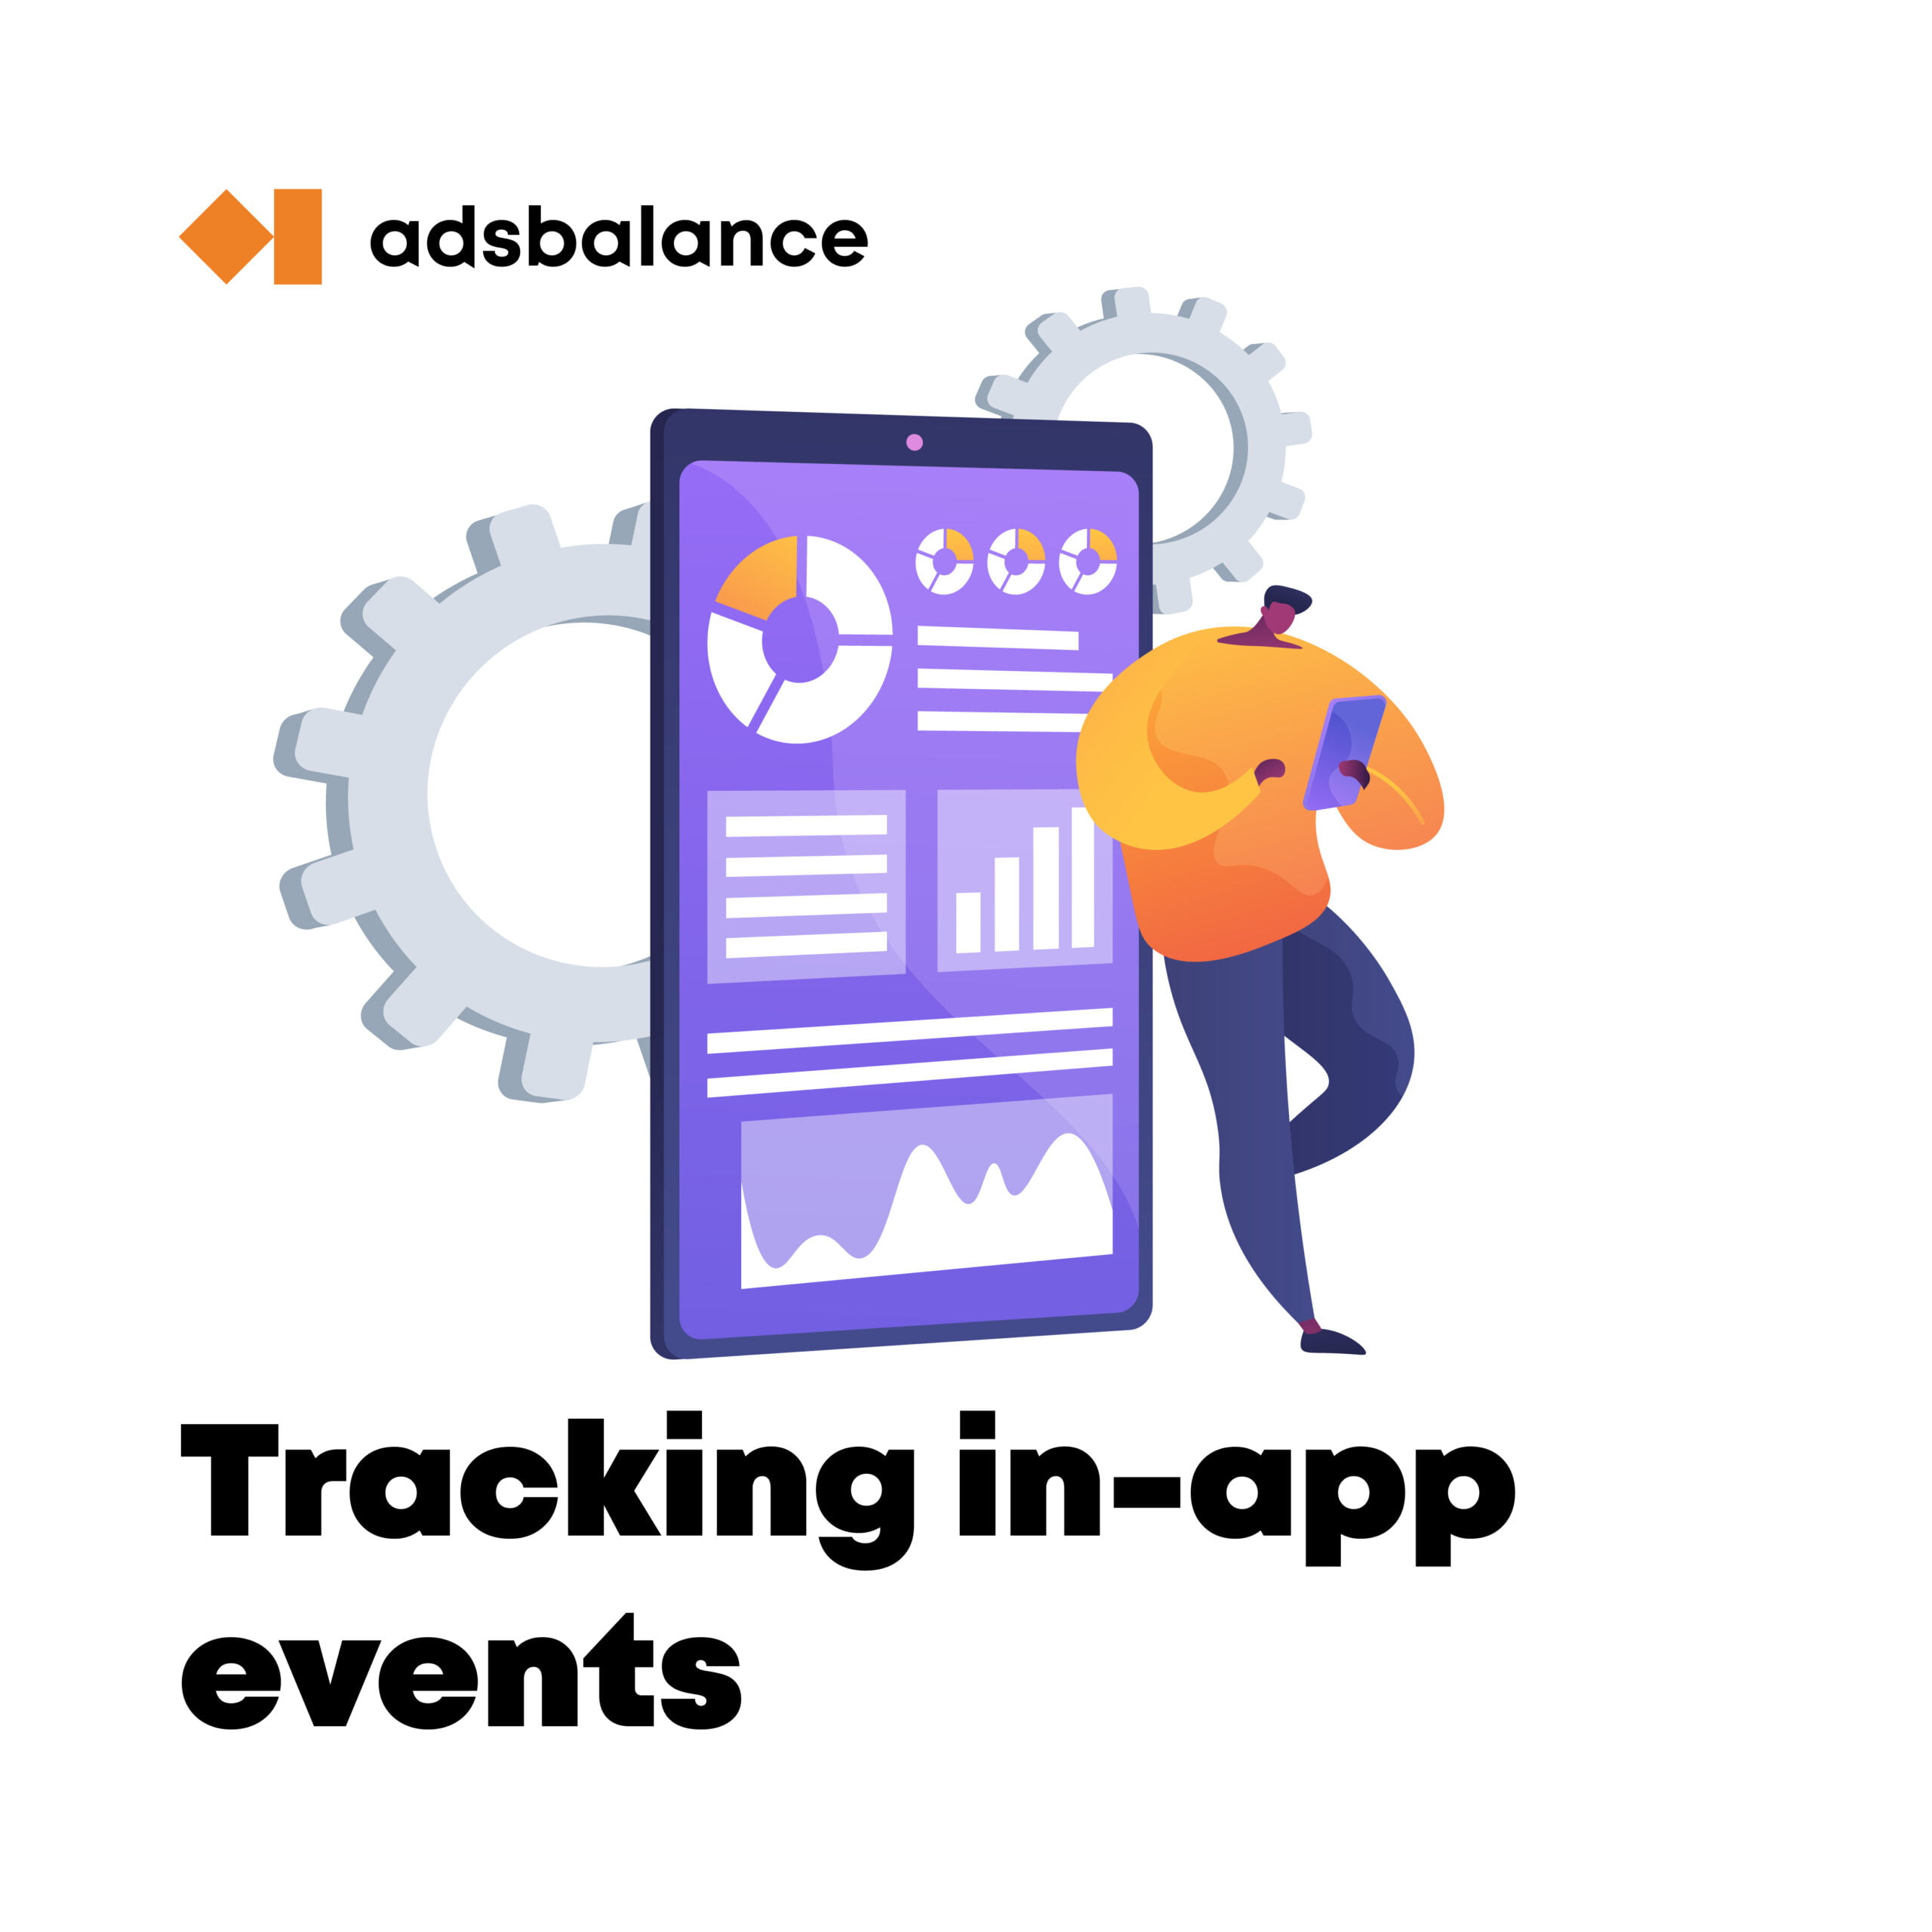 The guide to tracking in-app events